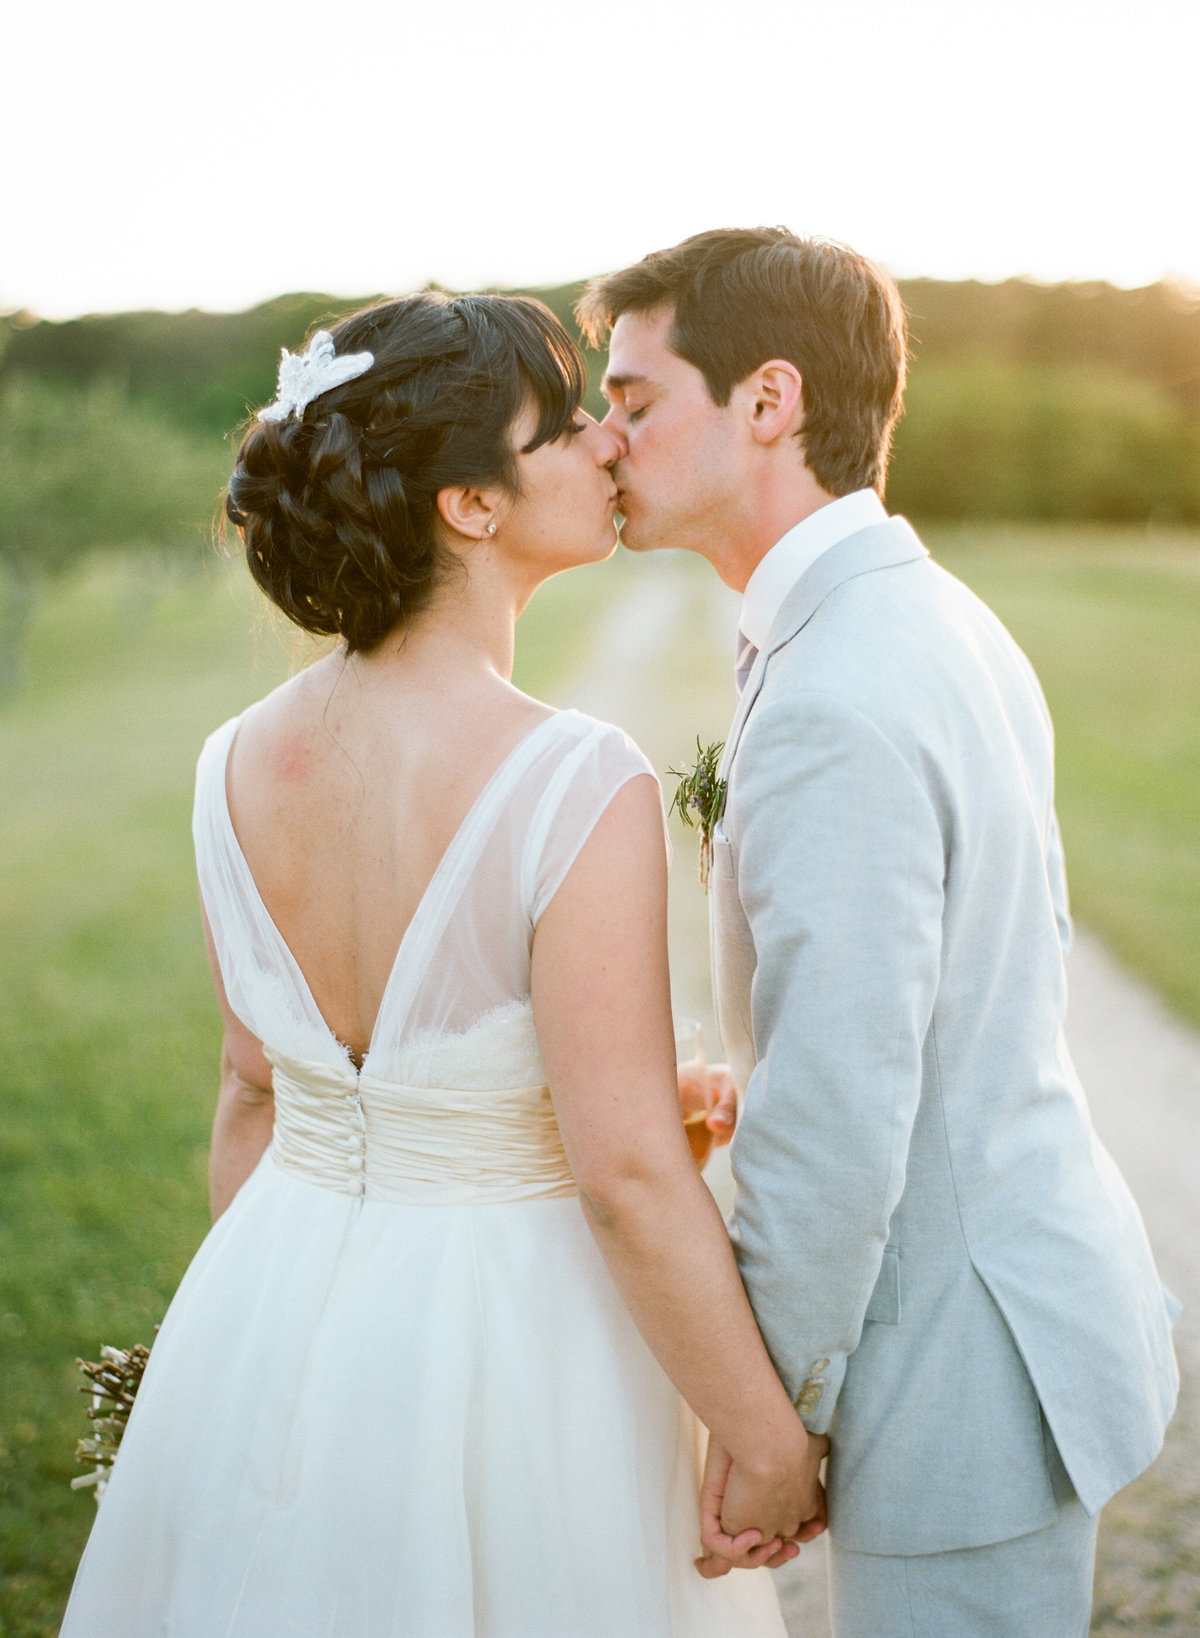 Bride and groom kiss golden hour